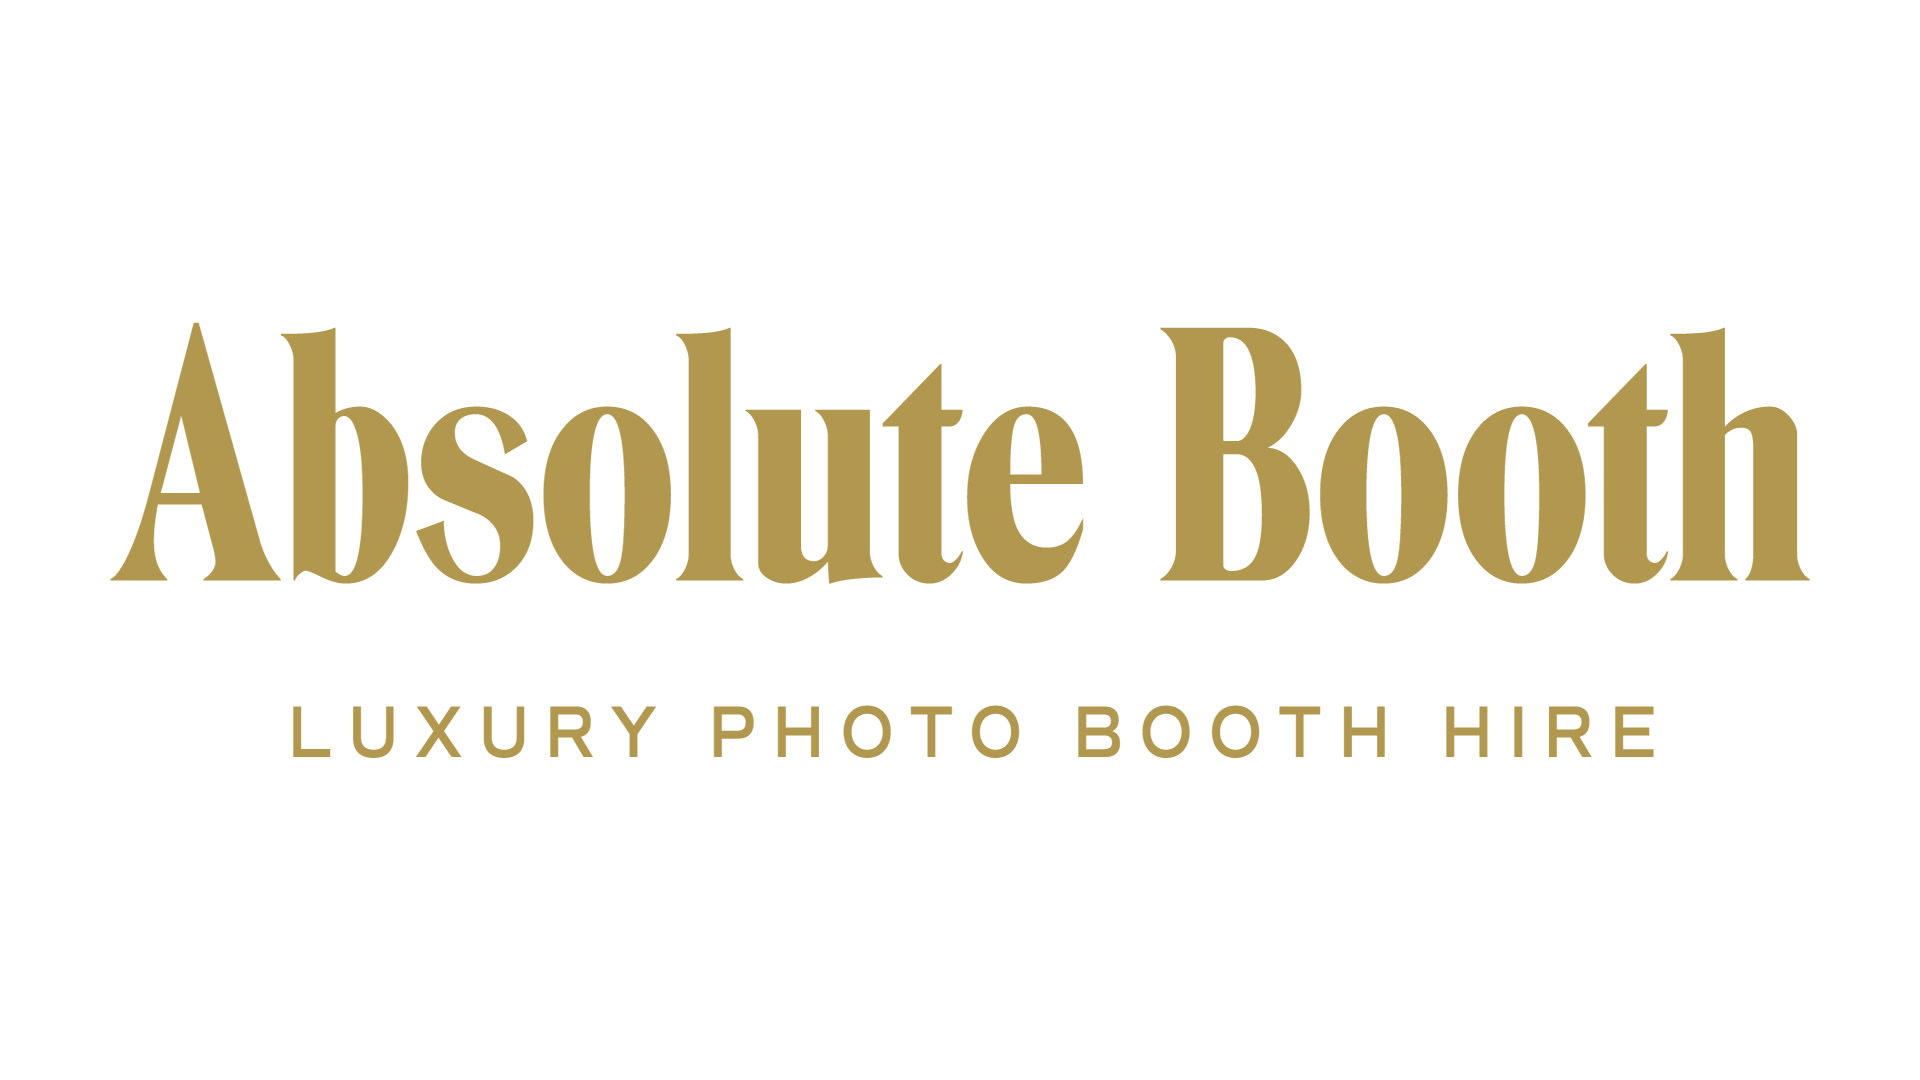 Absolute Booth